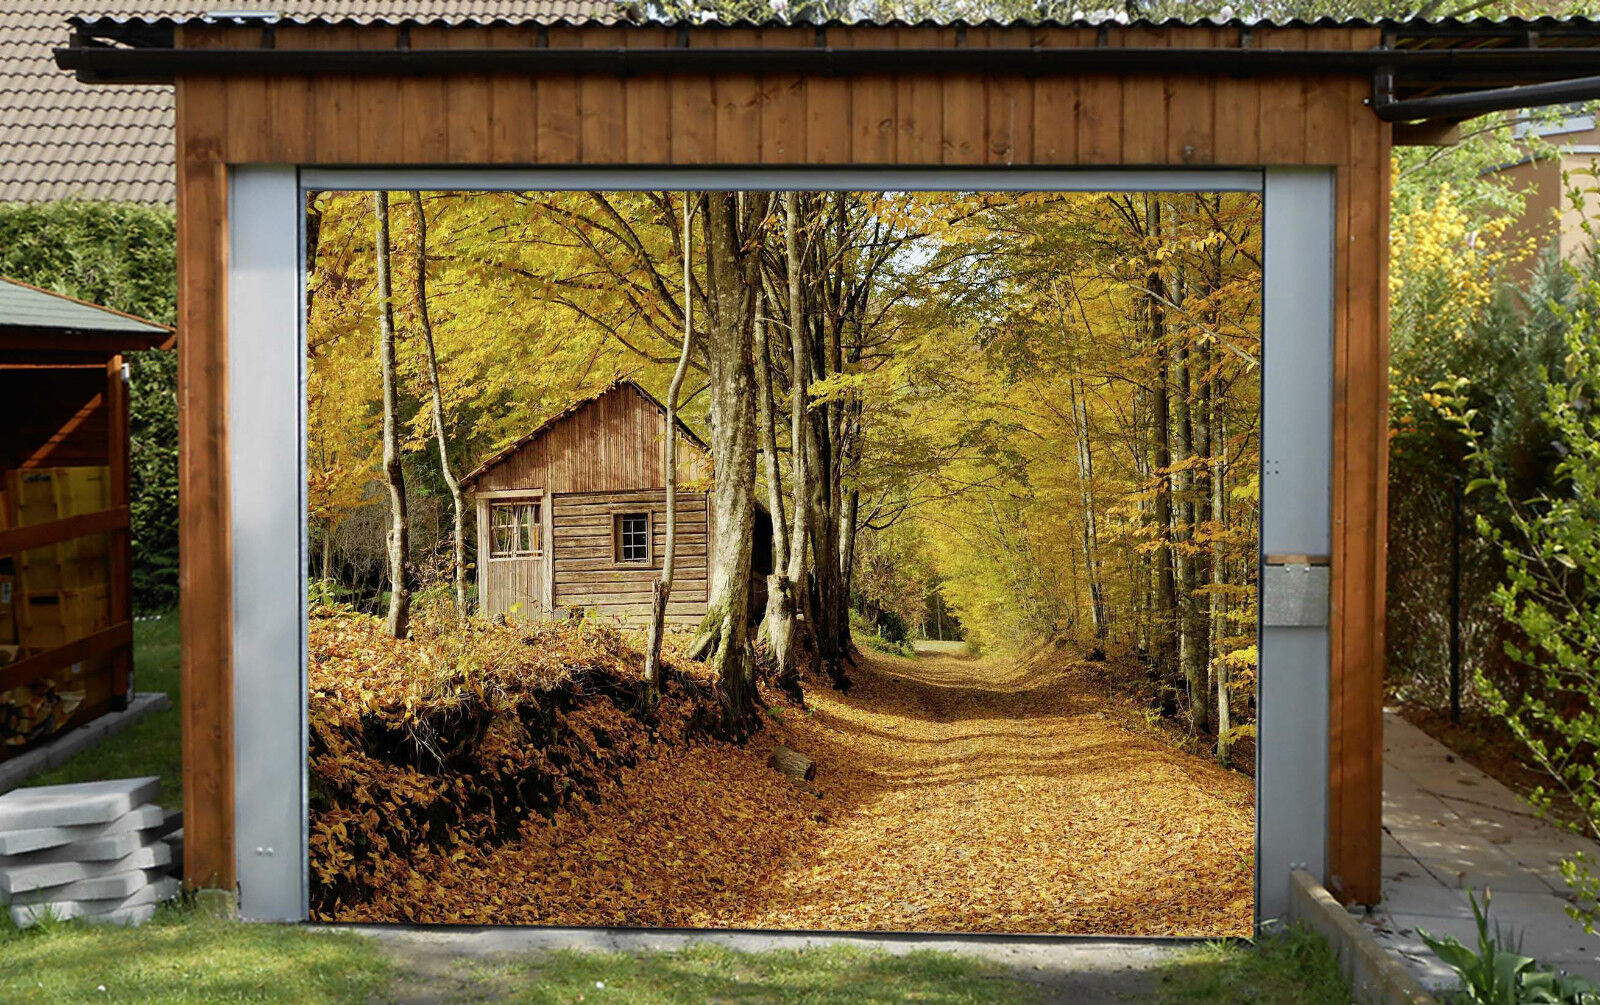 3D Chalet Bosco 27 Garage Porta Stampe Parete Decorazione Murale AJ WALLPAPER IT